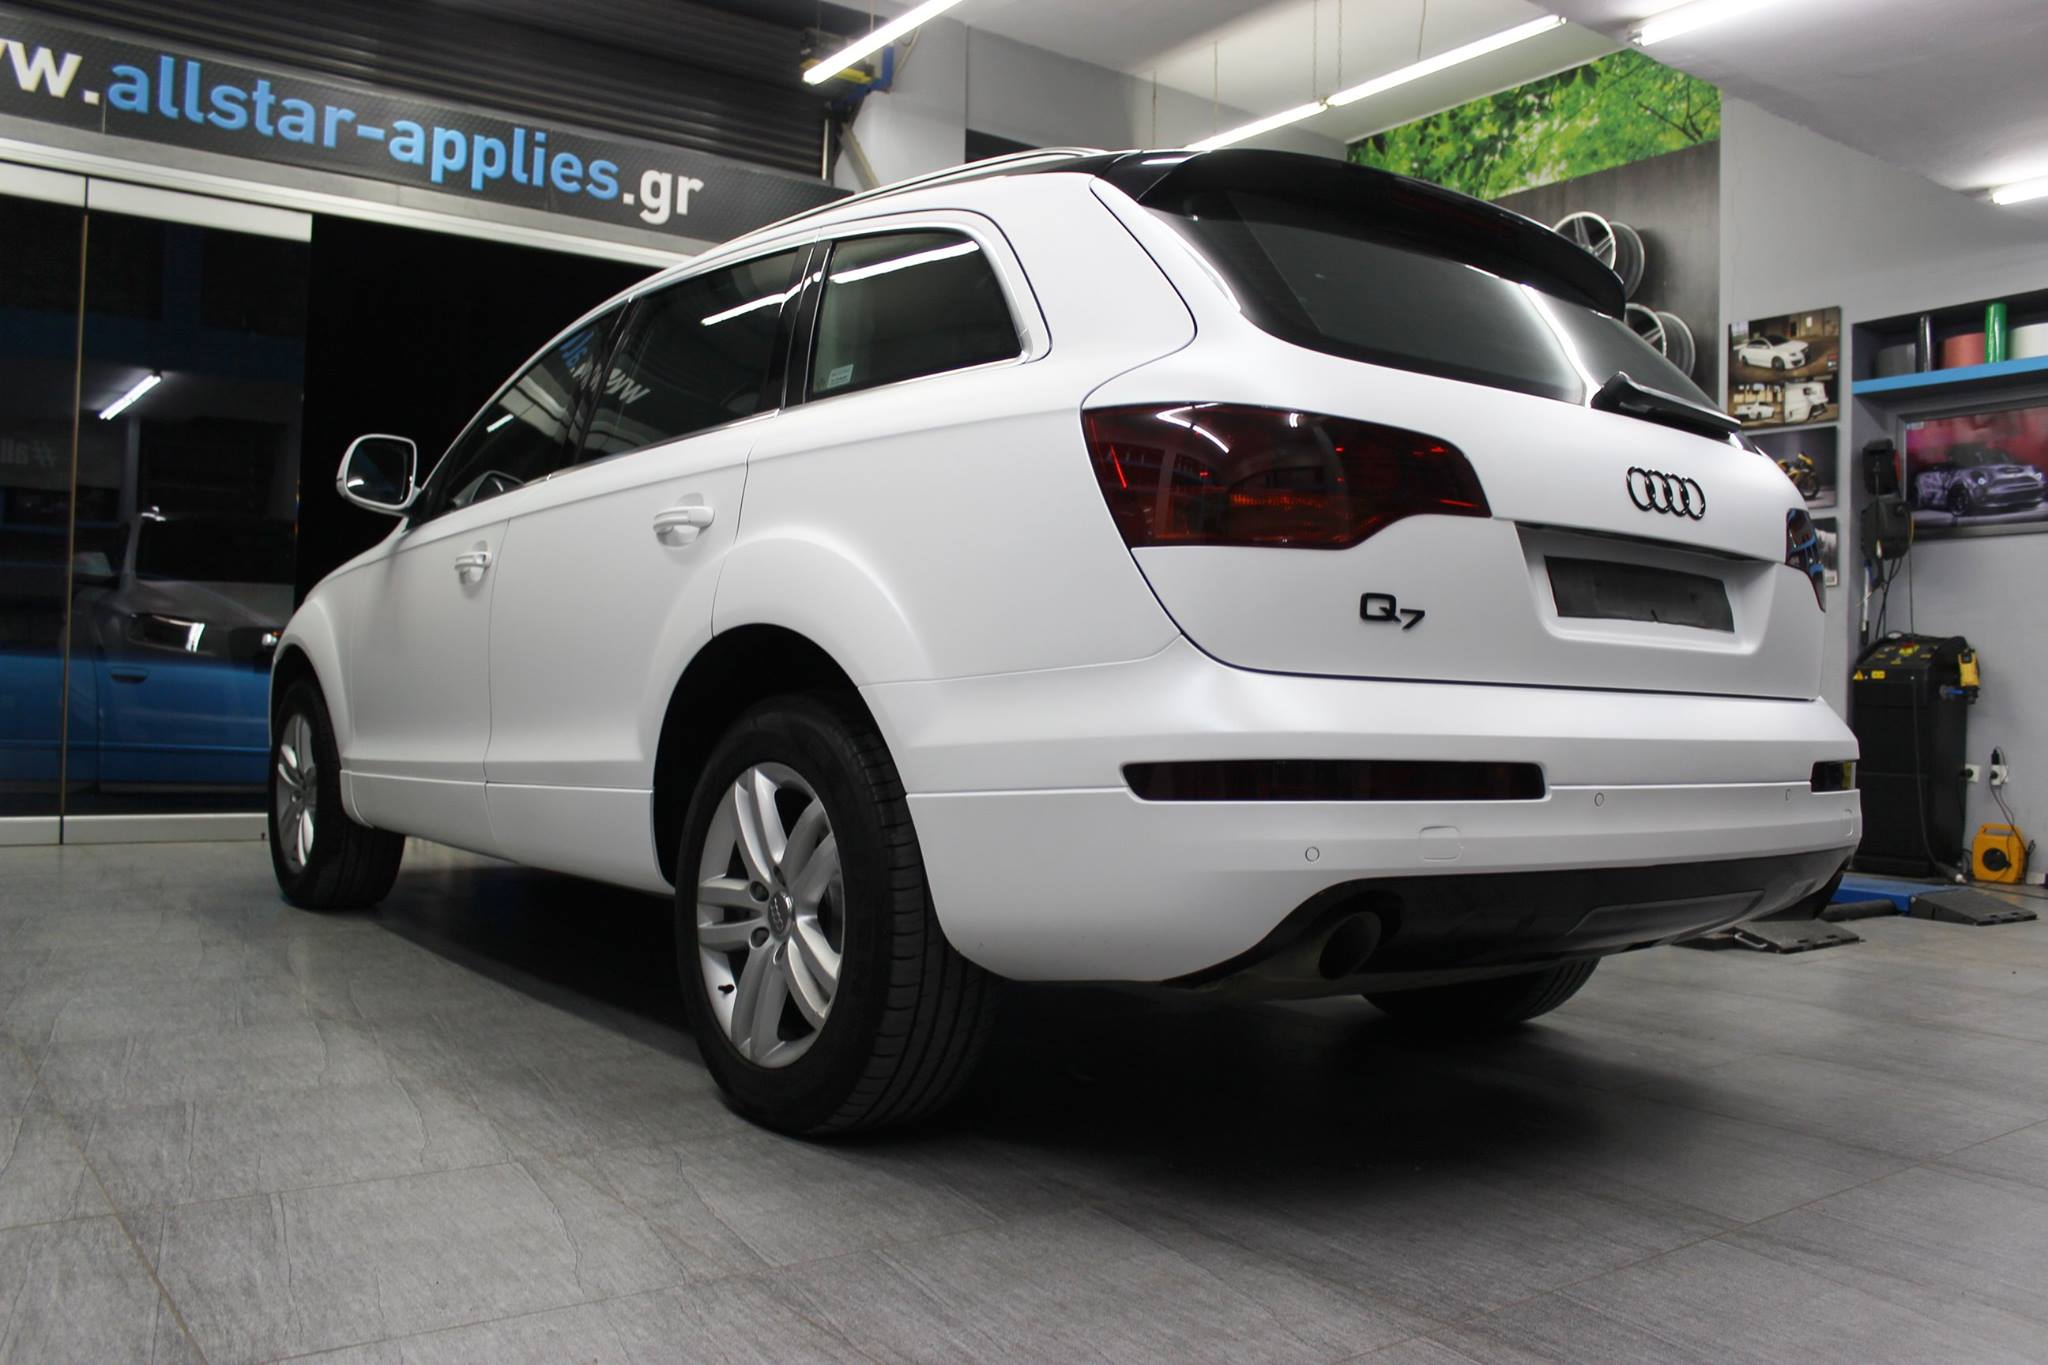 Audi Q7 - Matt Crystalline White (1)